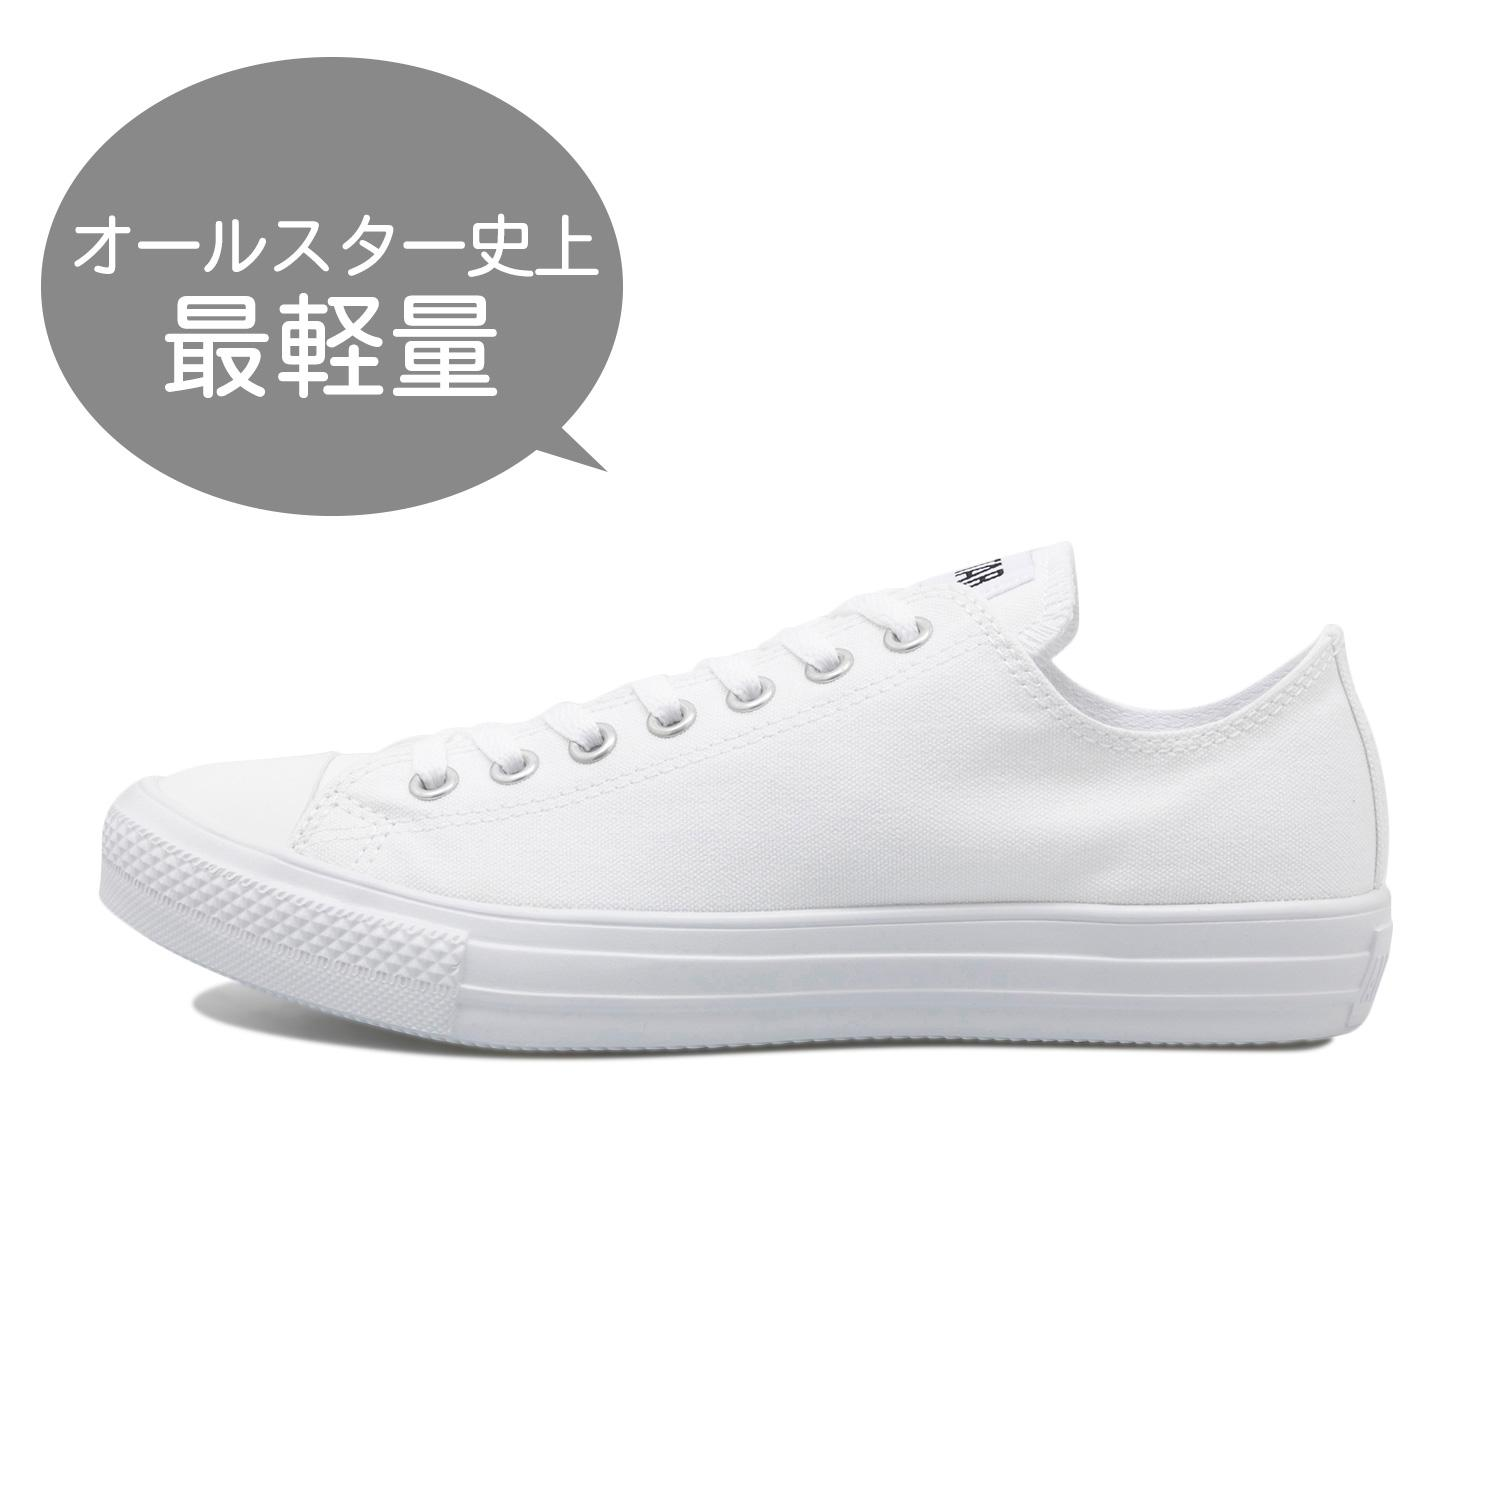 【CONVERSE】 コンバース AS LIGHT OX オールスター ライト OX 32168840 WHITE